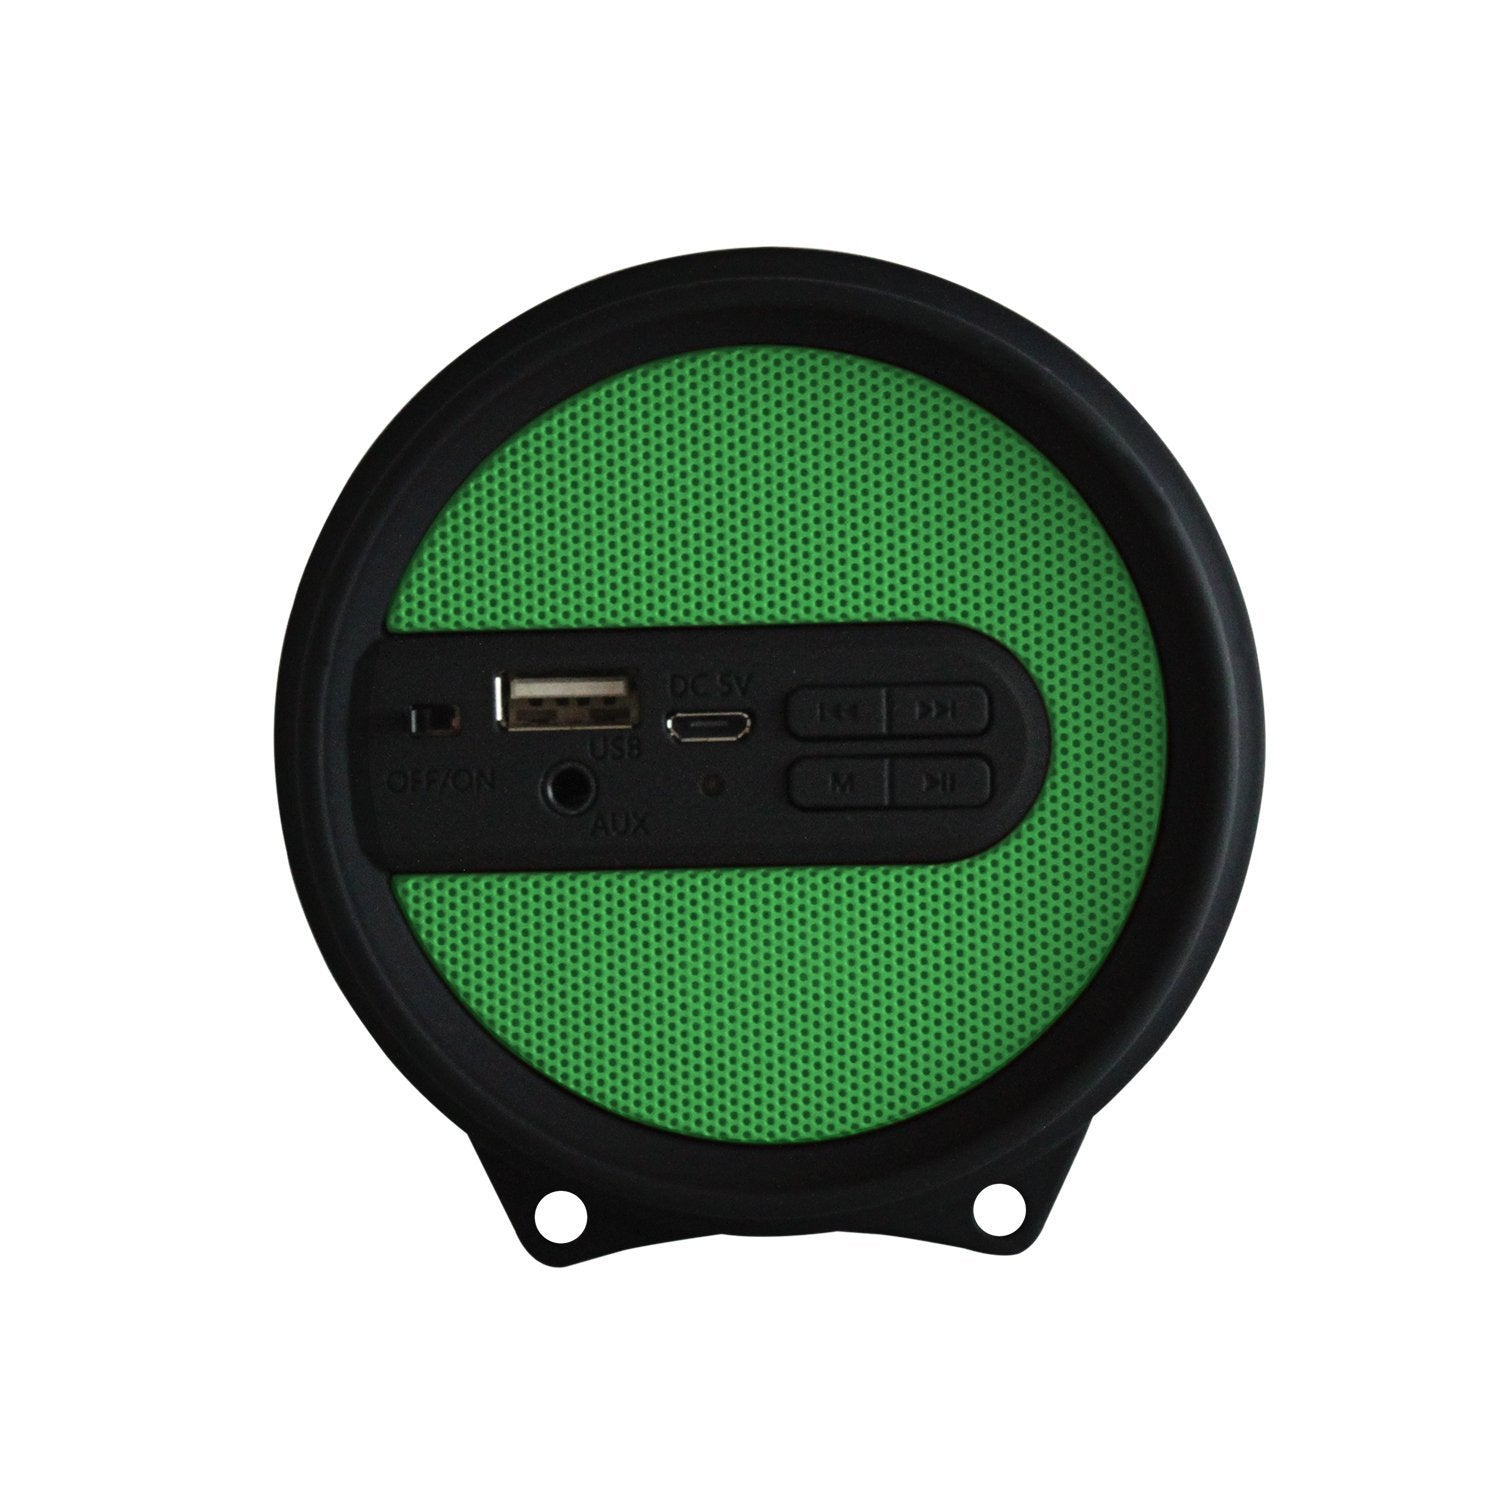 AXESS SPBL1043 Mini Portable Bluetooth Hi-Fi Bluetooth Speaker with Dancing LED Lights, Green